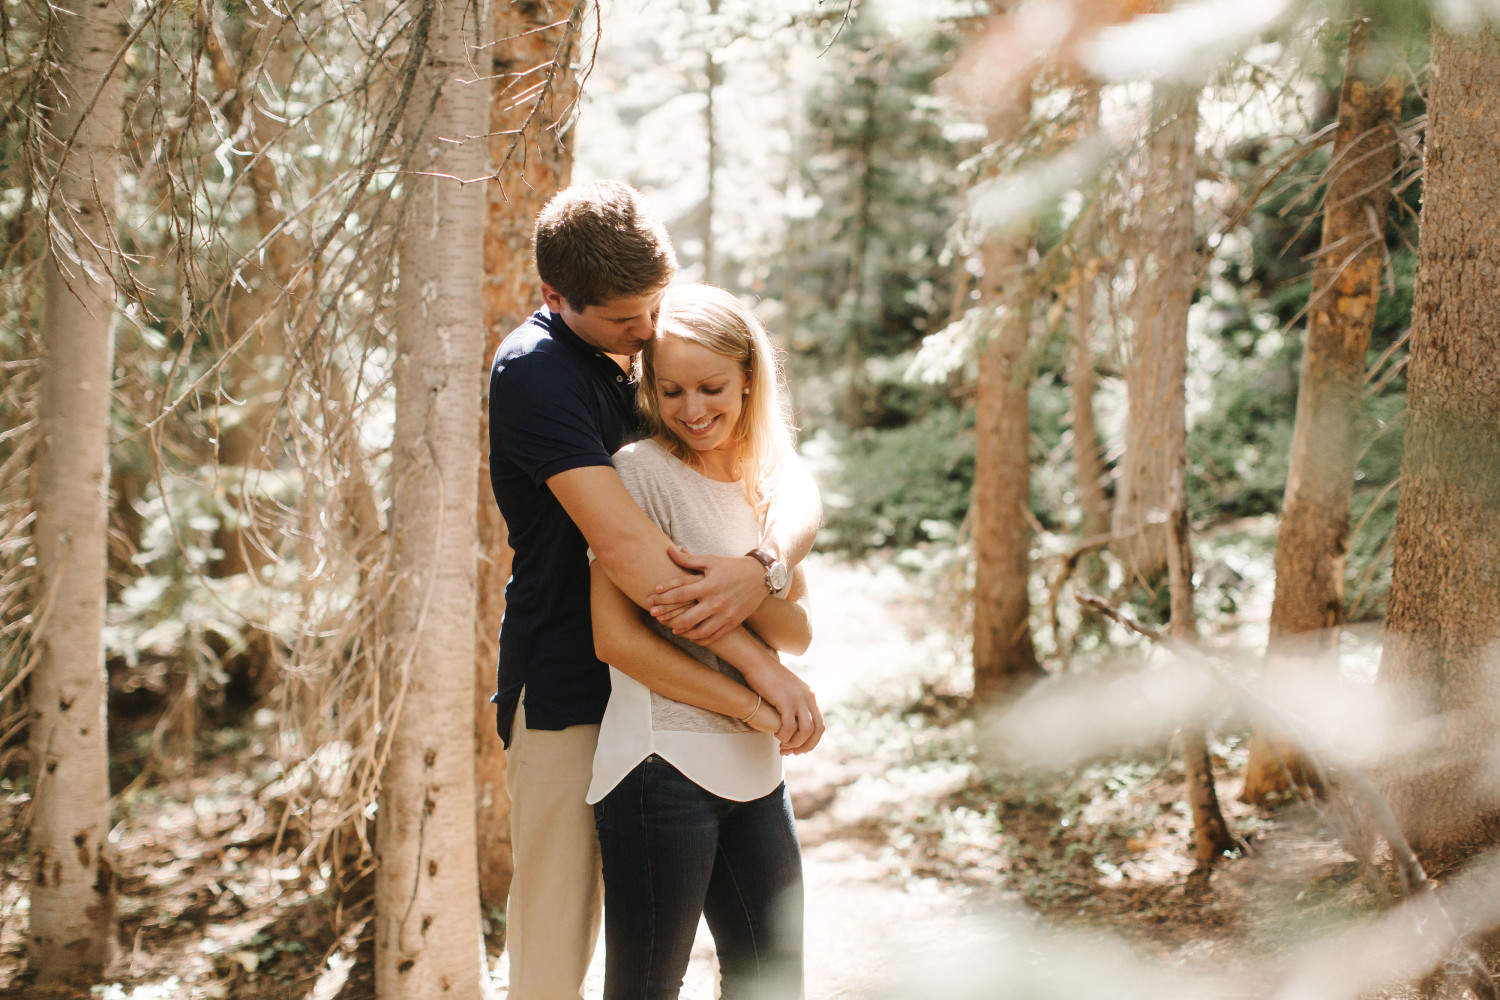 Jenny+Jake_Engagment_Colorado_RussellHeeterPhotography-103